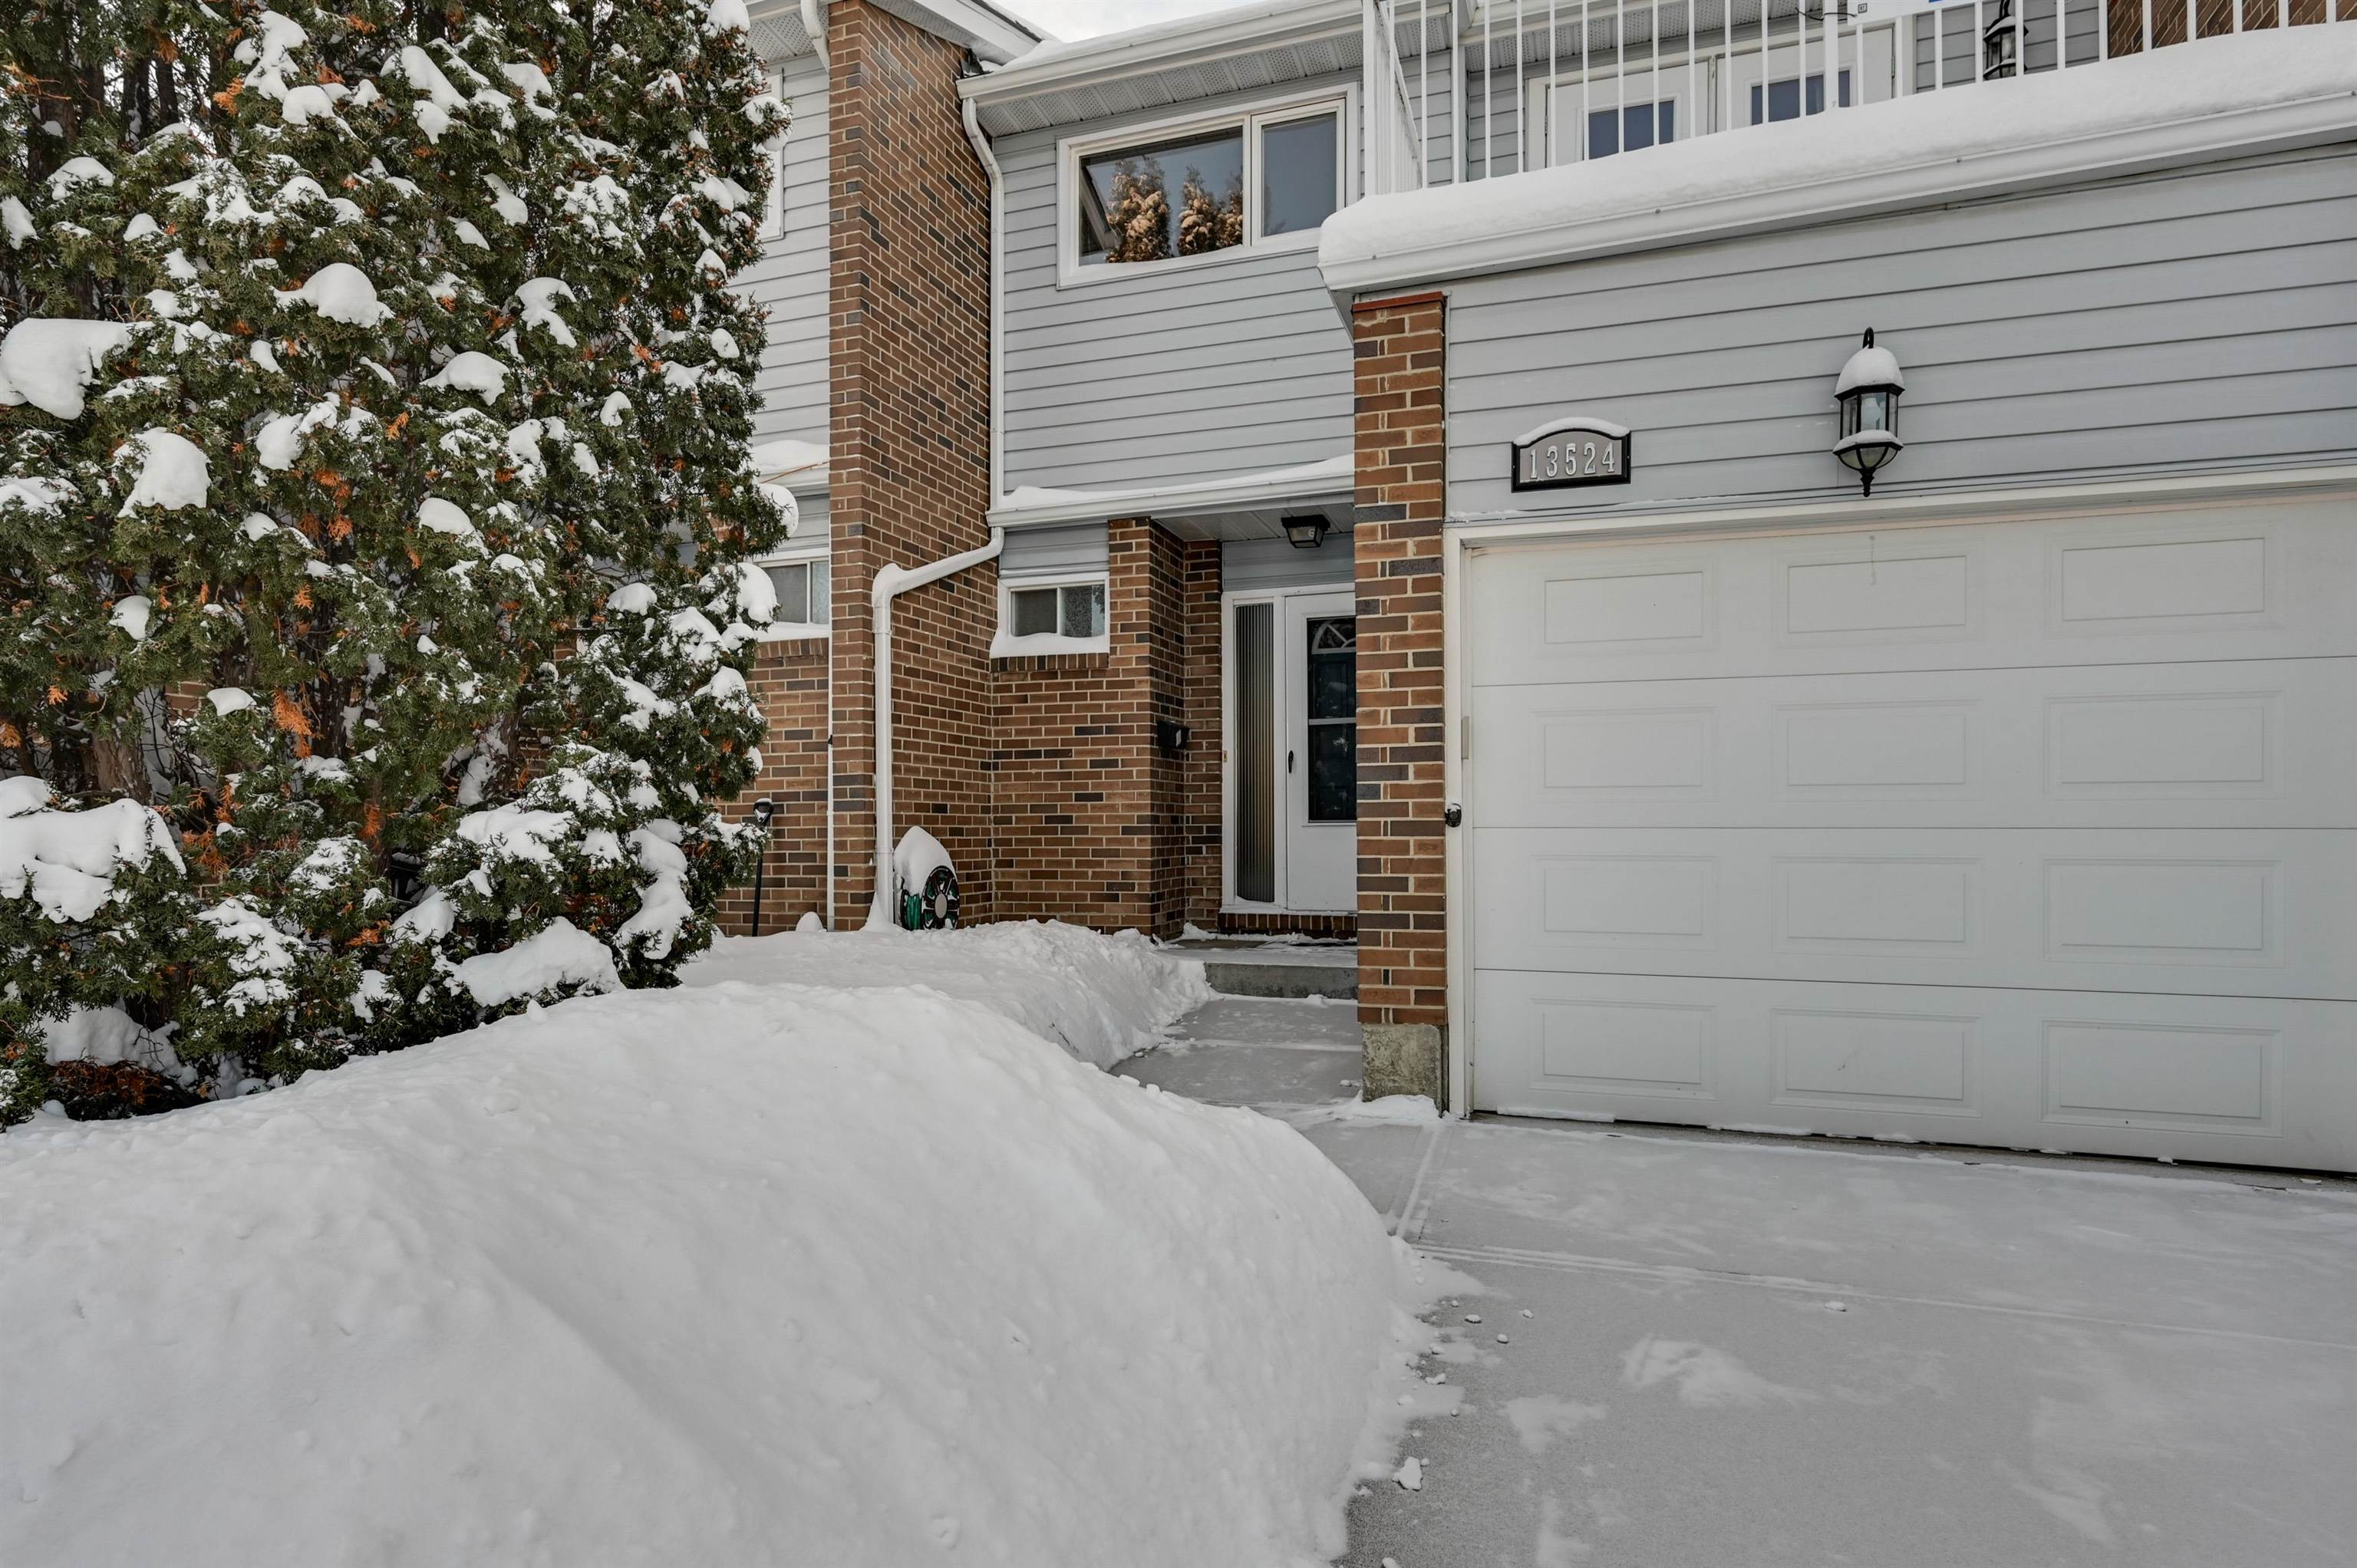 Fully renovated 2 storey townhouse with single attached garage in the community of Belmont. This home offers new laminate flooring and counter tops, newer cabinets, and backsplash in the kitchen. The main level opens up to an inviting and spacious living and dining room area with access to a large fenced private back deck with gas line and gas barbecue. A convenient powder room is located on the main floor just off the front entry. The upper floor has 3 large, upgraded bedrooms and a renovated full bathroom. Enter the primary bedroom through double French doors and retreat to a substantial sized sanctuary with a private east balcony. No need to feel cramped here as the basement features a fully developed family room with a refinished corner stoned wood burning fireplace. Upgrades includes furnace 2020, hot water tank 2019, aluminum to copper conversion 2020 on all sockets and switches, new lighting throughout and new electrical panel 2021 with permit. Simply a splendid home for cocooning or entertaining.